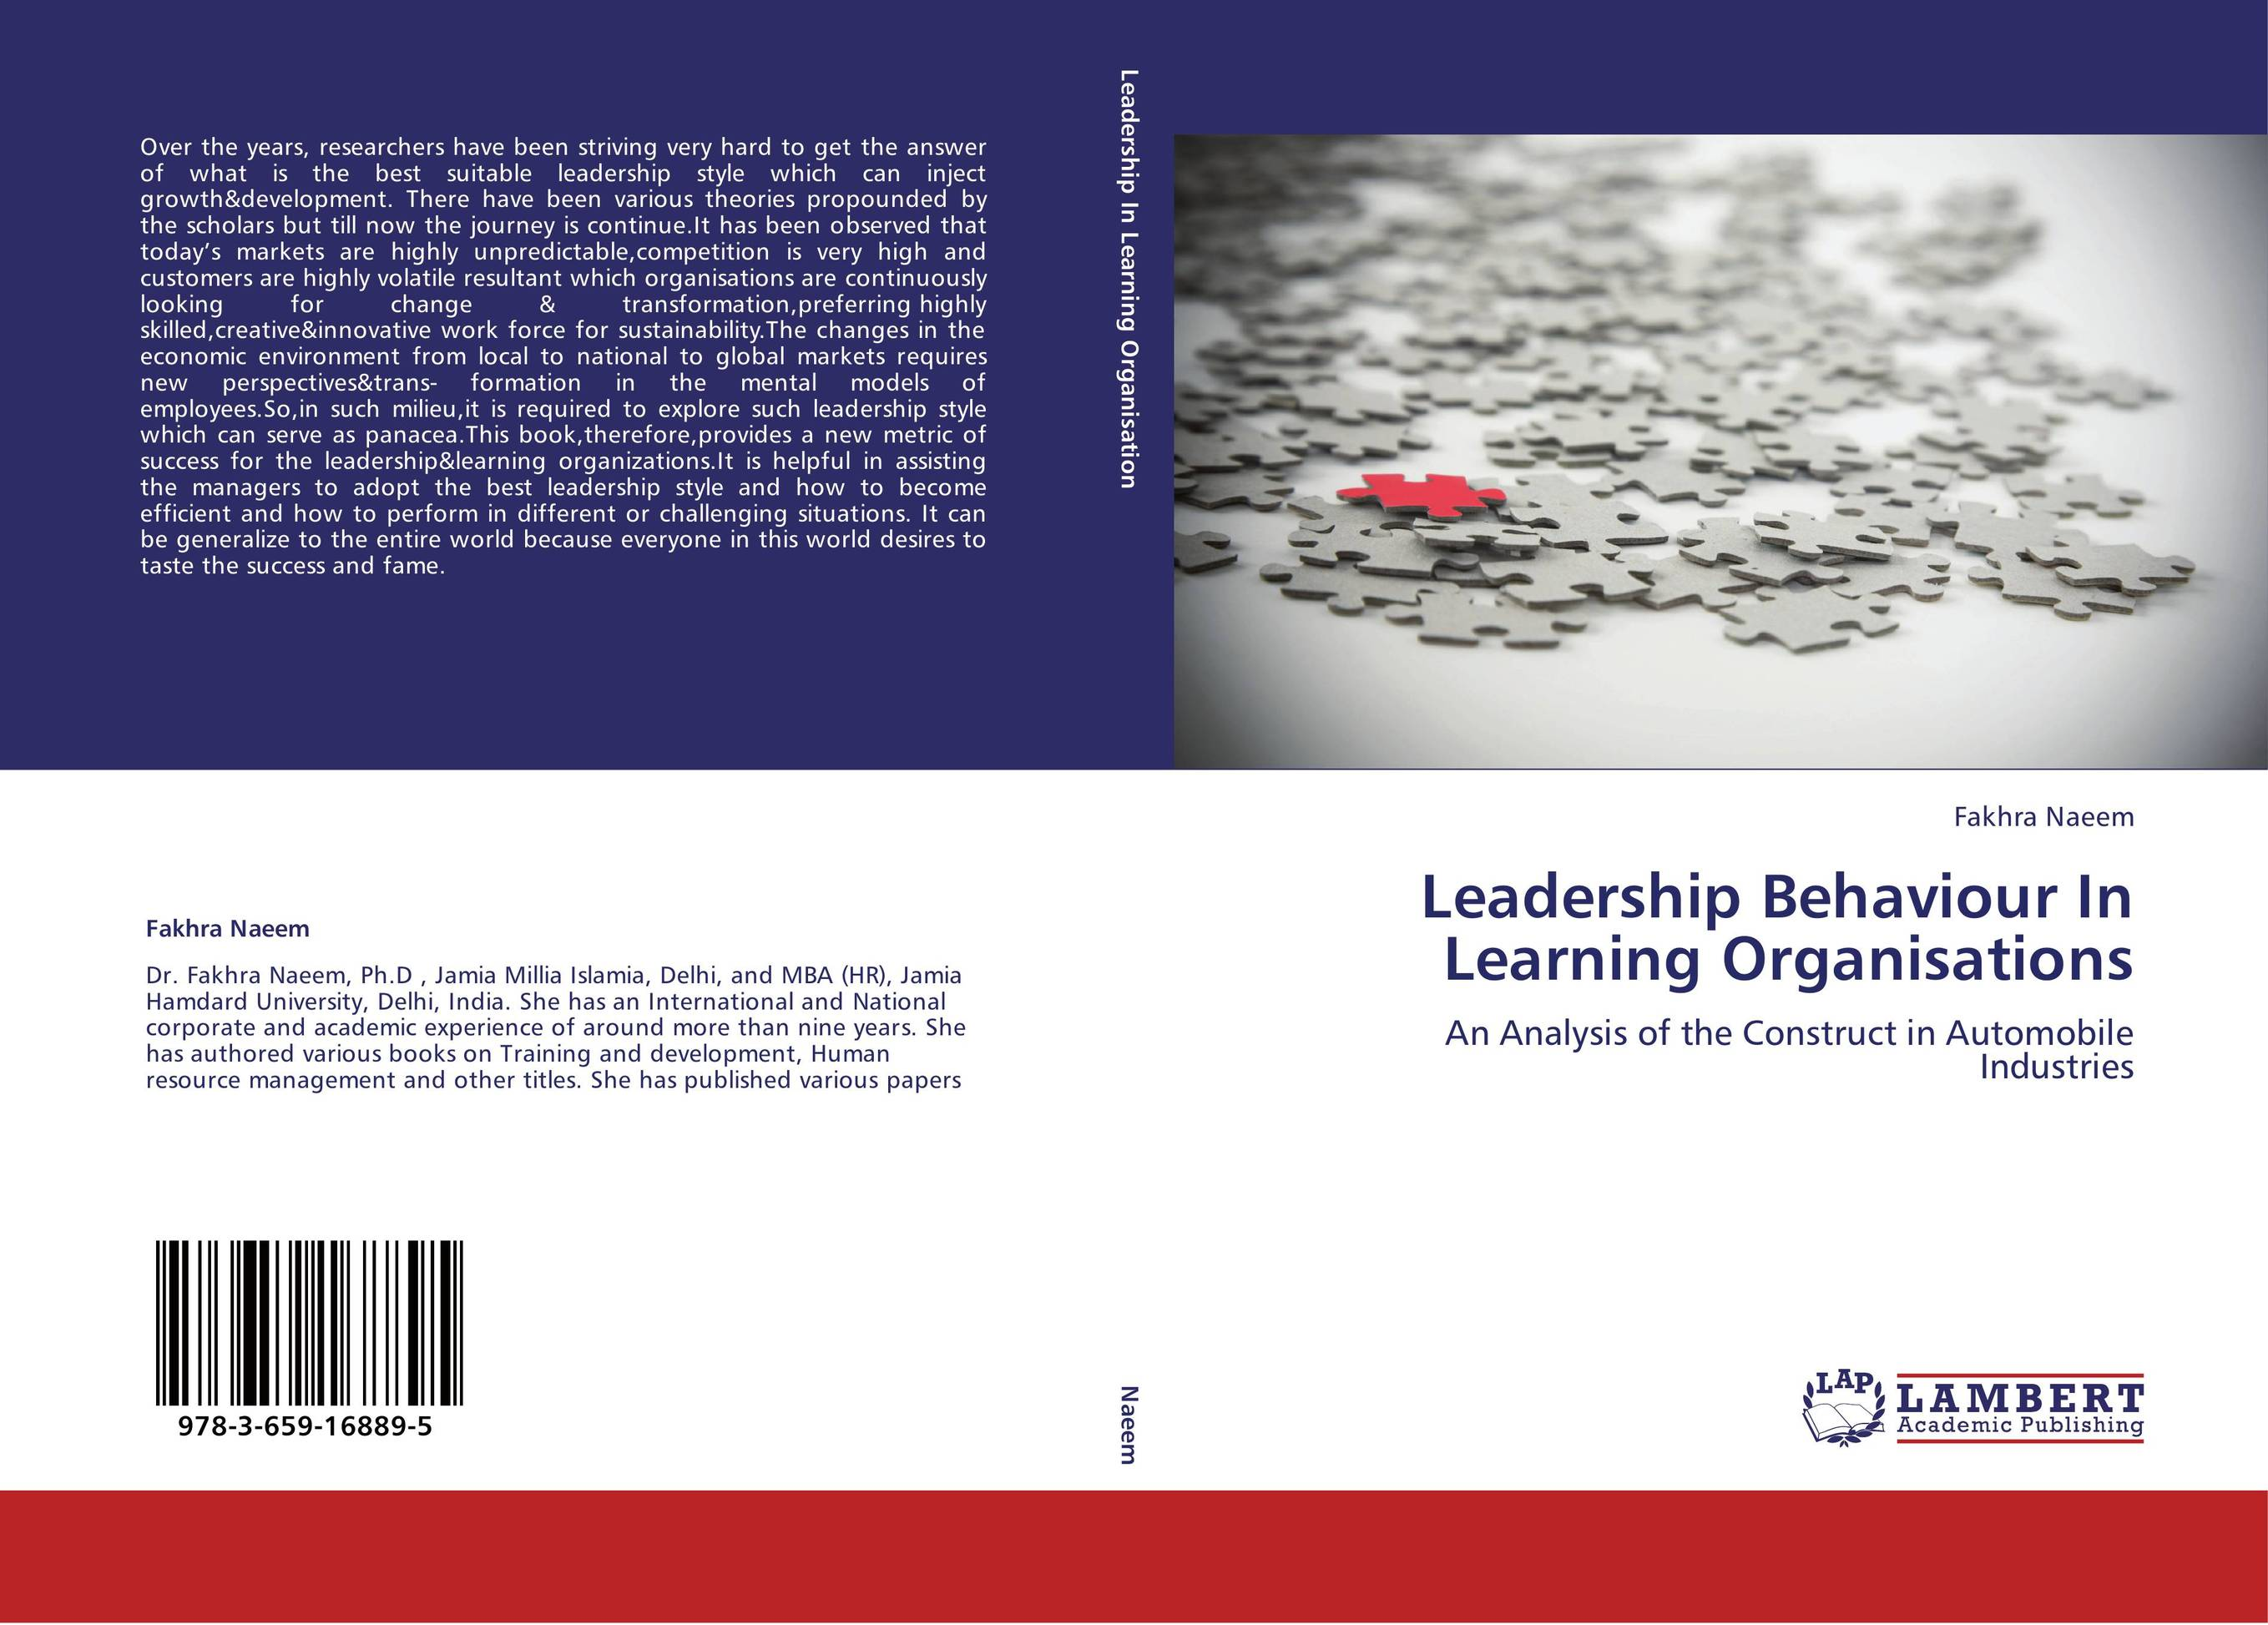 an analysis of the importance of transformational leadership in the success of an organization Proper organization is vital to the success of a nursing team without proper organization, chaos is likely to ensue -- definitely not a good thing in the demanding, fast-paced healthcare world a strong nurse leader must be methodical, detail oriented and skilled at quickly identifying and fixing problems.